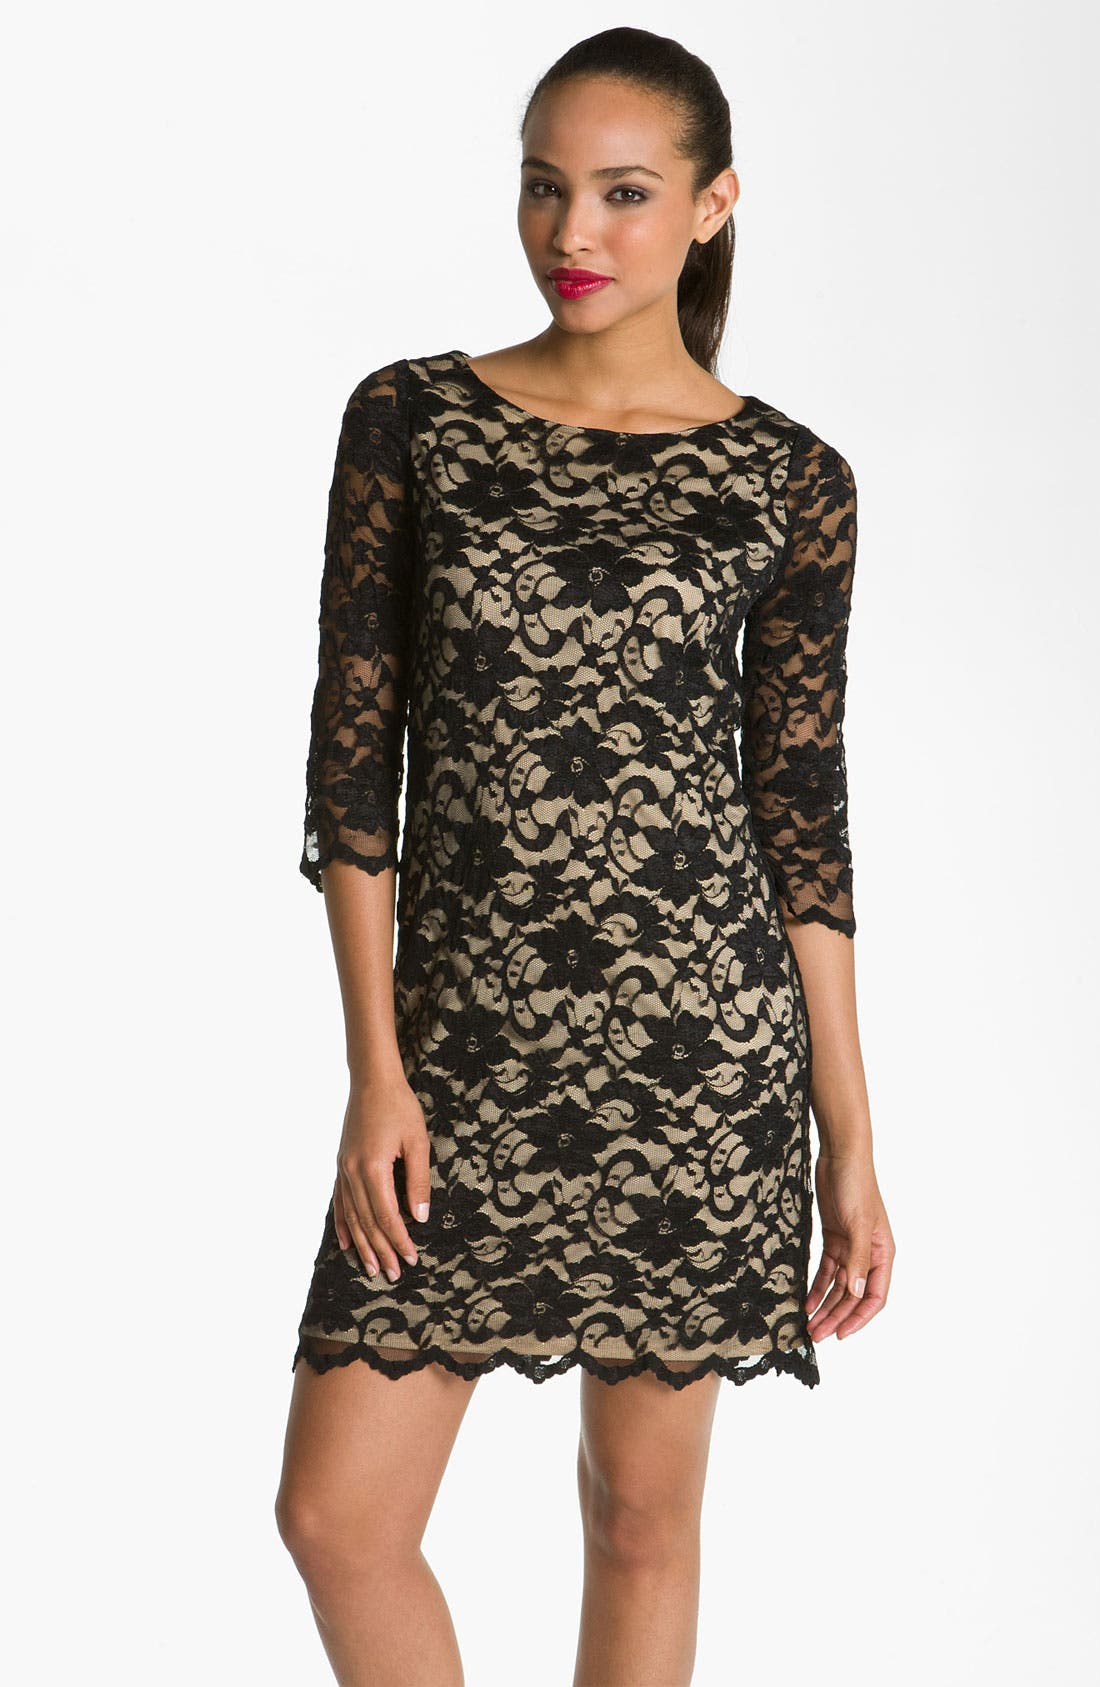 Alternate Image 1 Selected - Alexia Admor Lace Overlay Dress